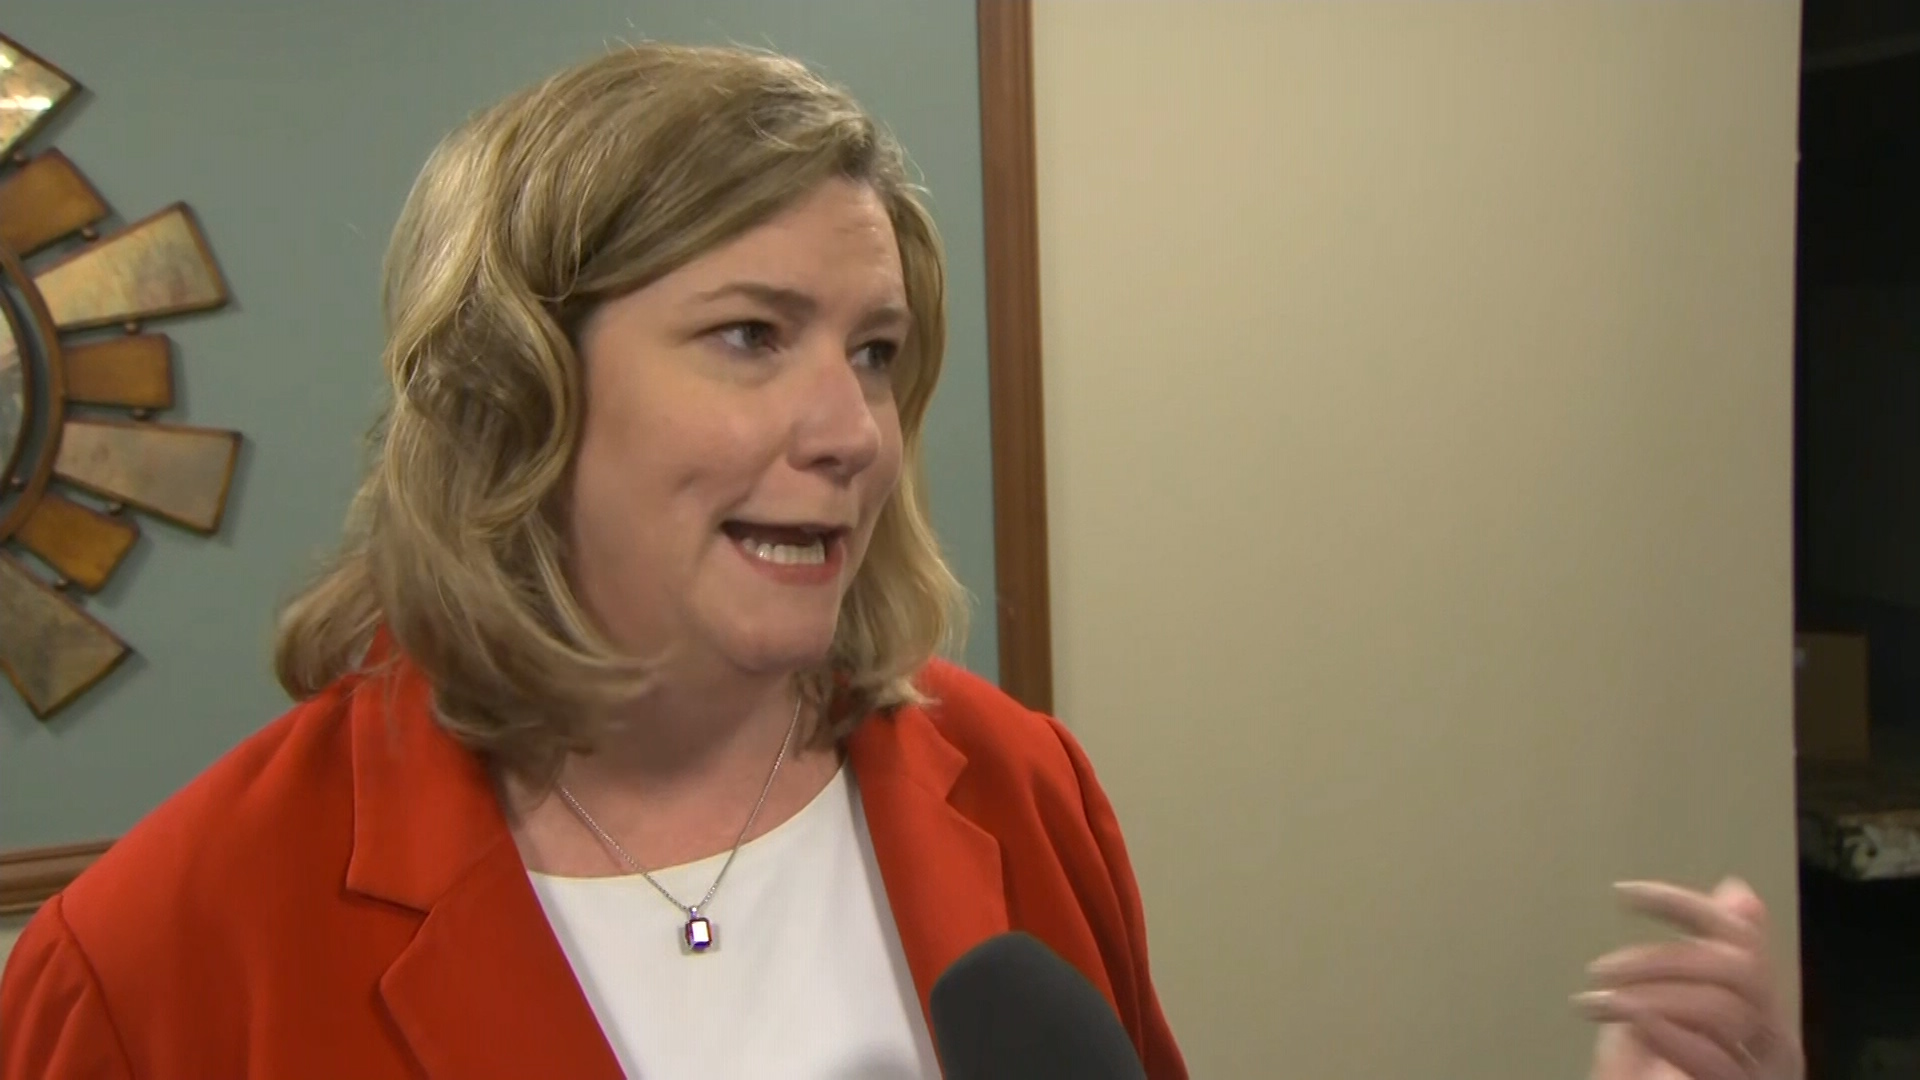 Dayton Mayor Nan Whaley Sought Extra Security After Trump Called Her 'Dishonest'